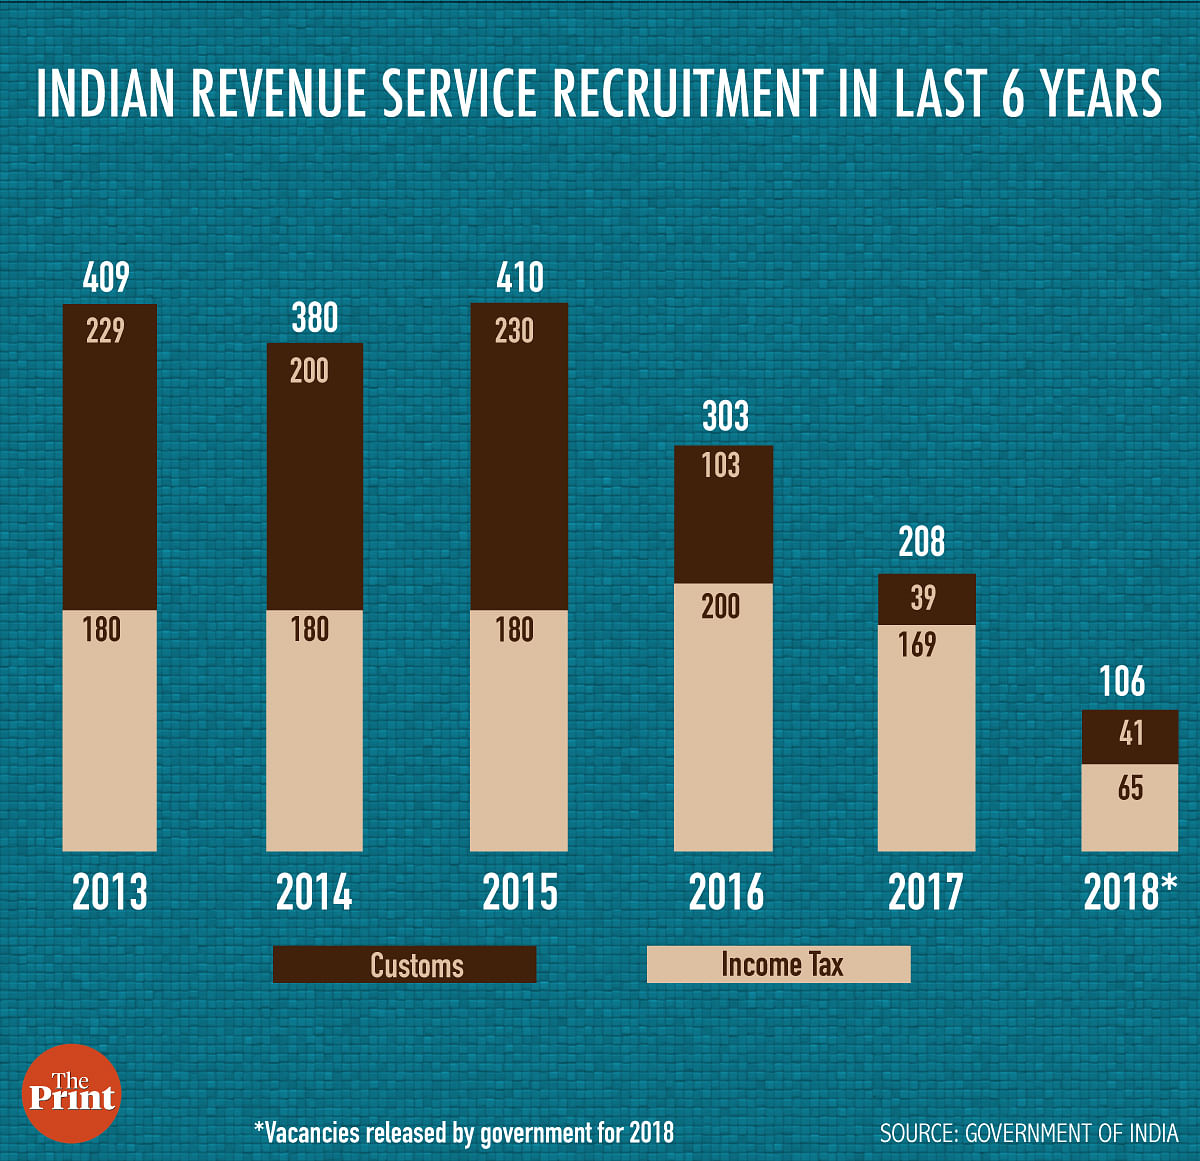 Decline in recruitment of IRS officers